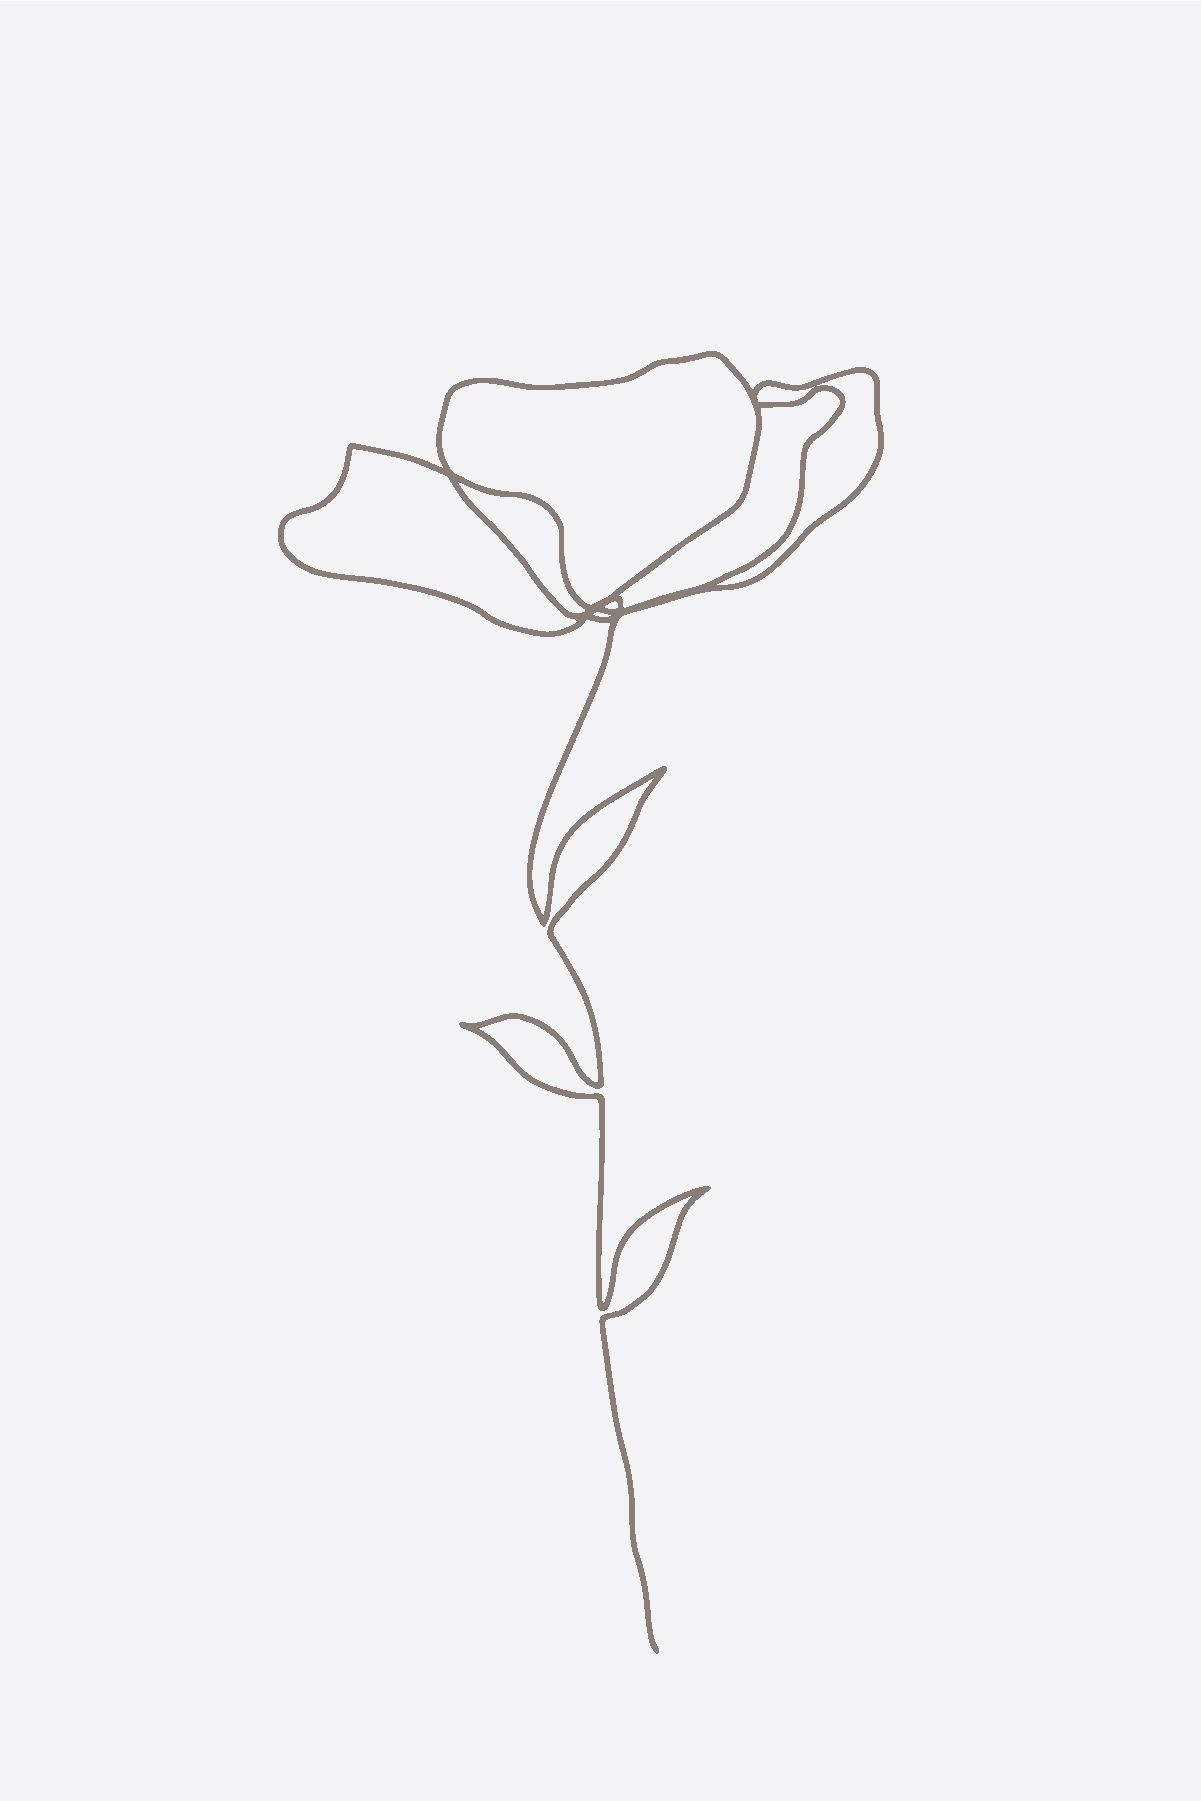 Minimalist Drawings - Beautiful Line Art and Simple Sketches